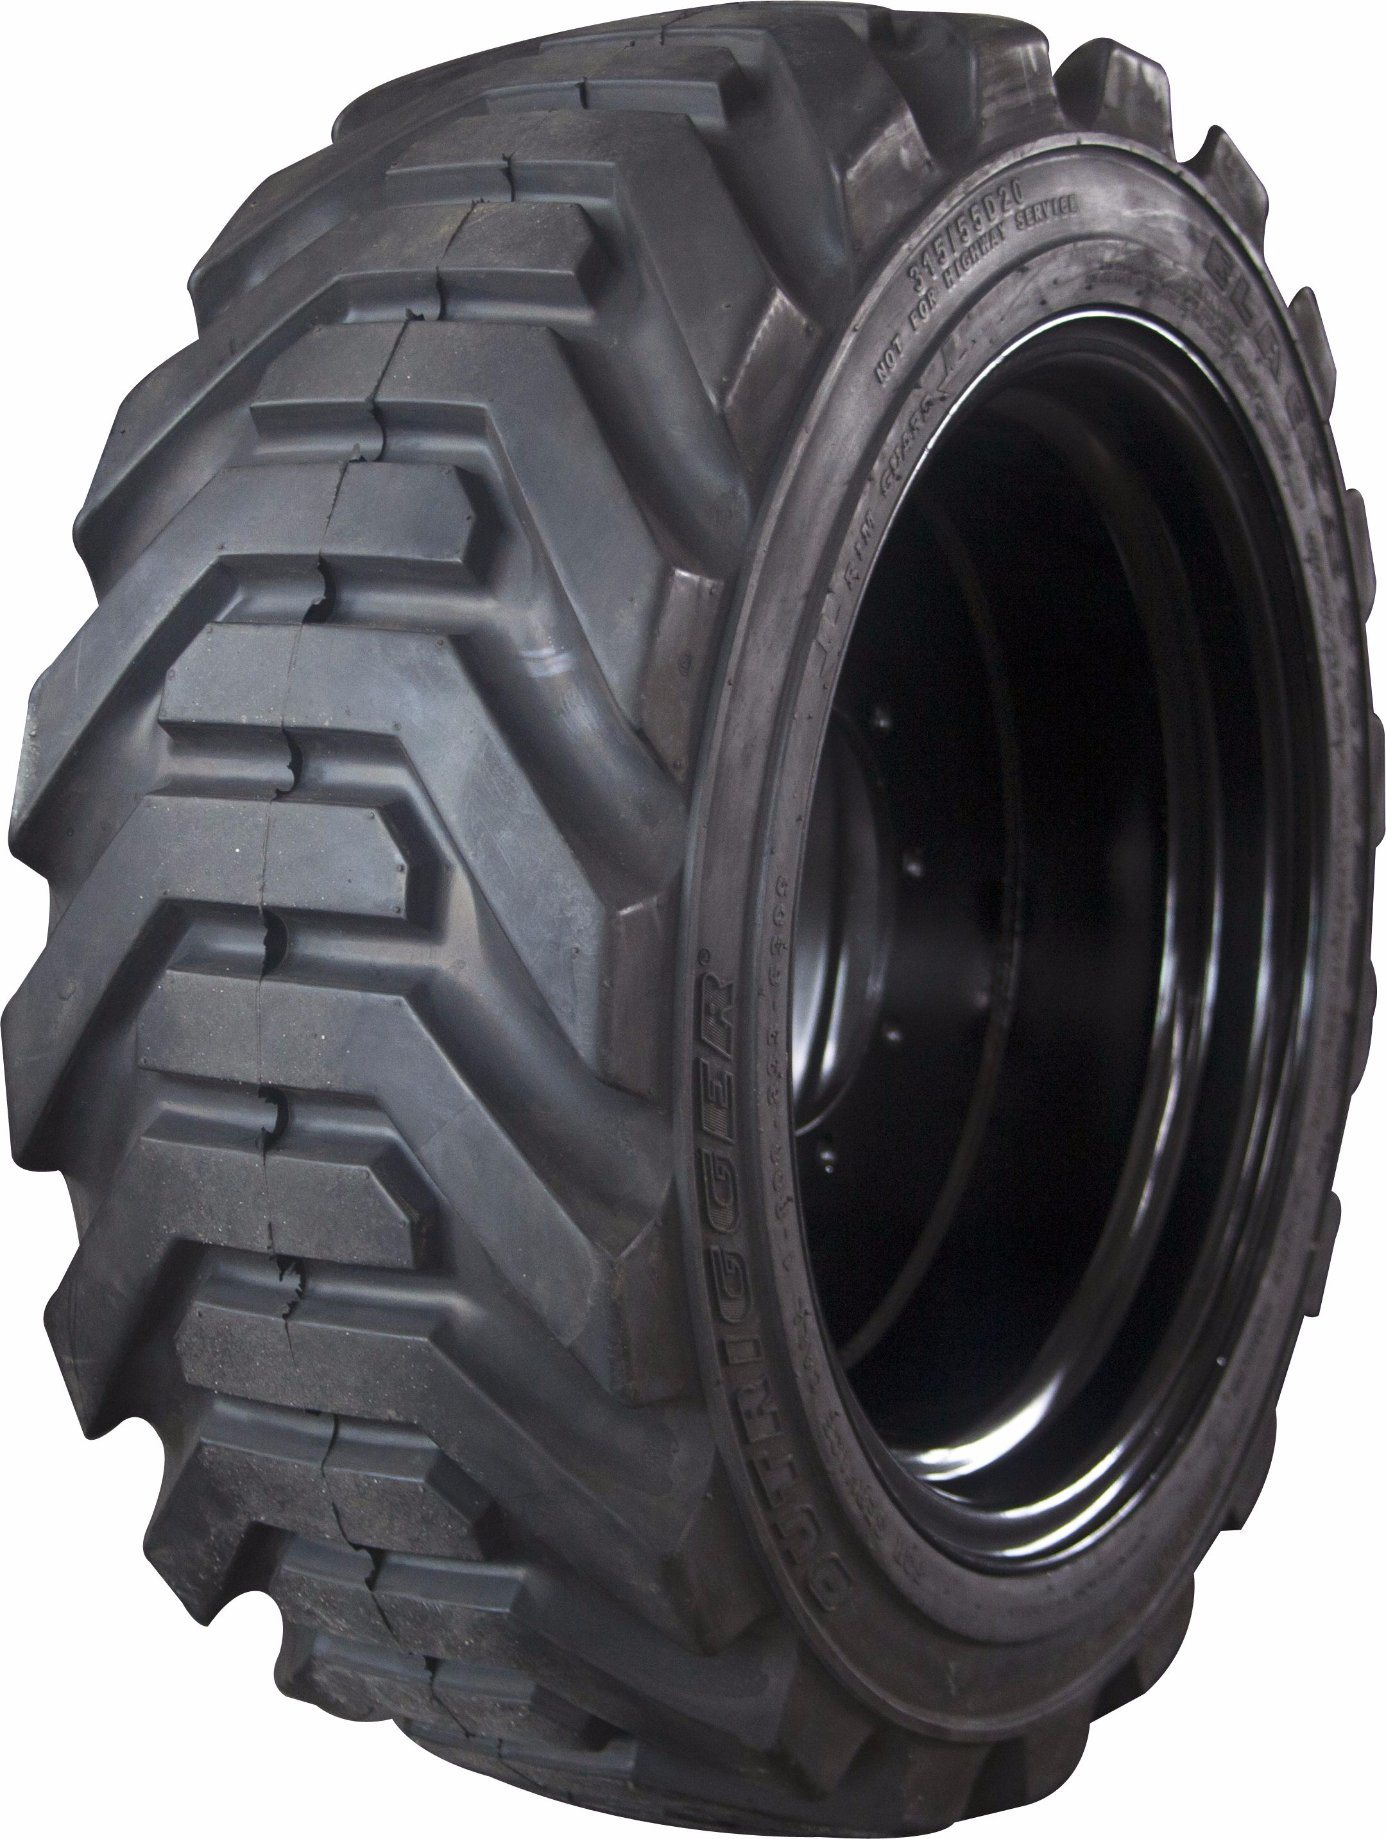 All Steel Radial OTR Tyres for Caterpillar (17.5R25 20.5R25)